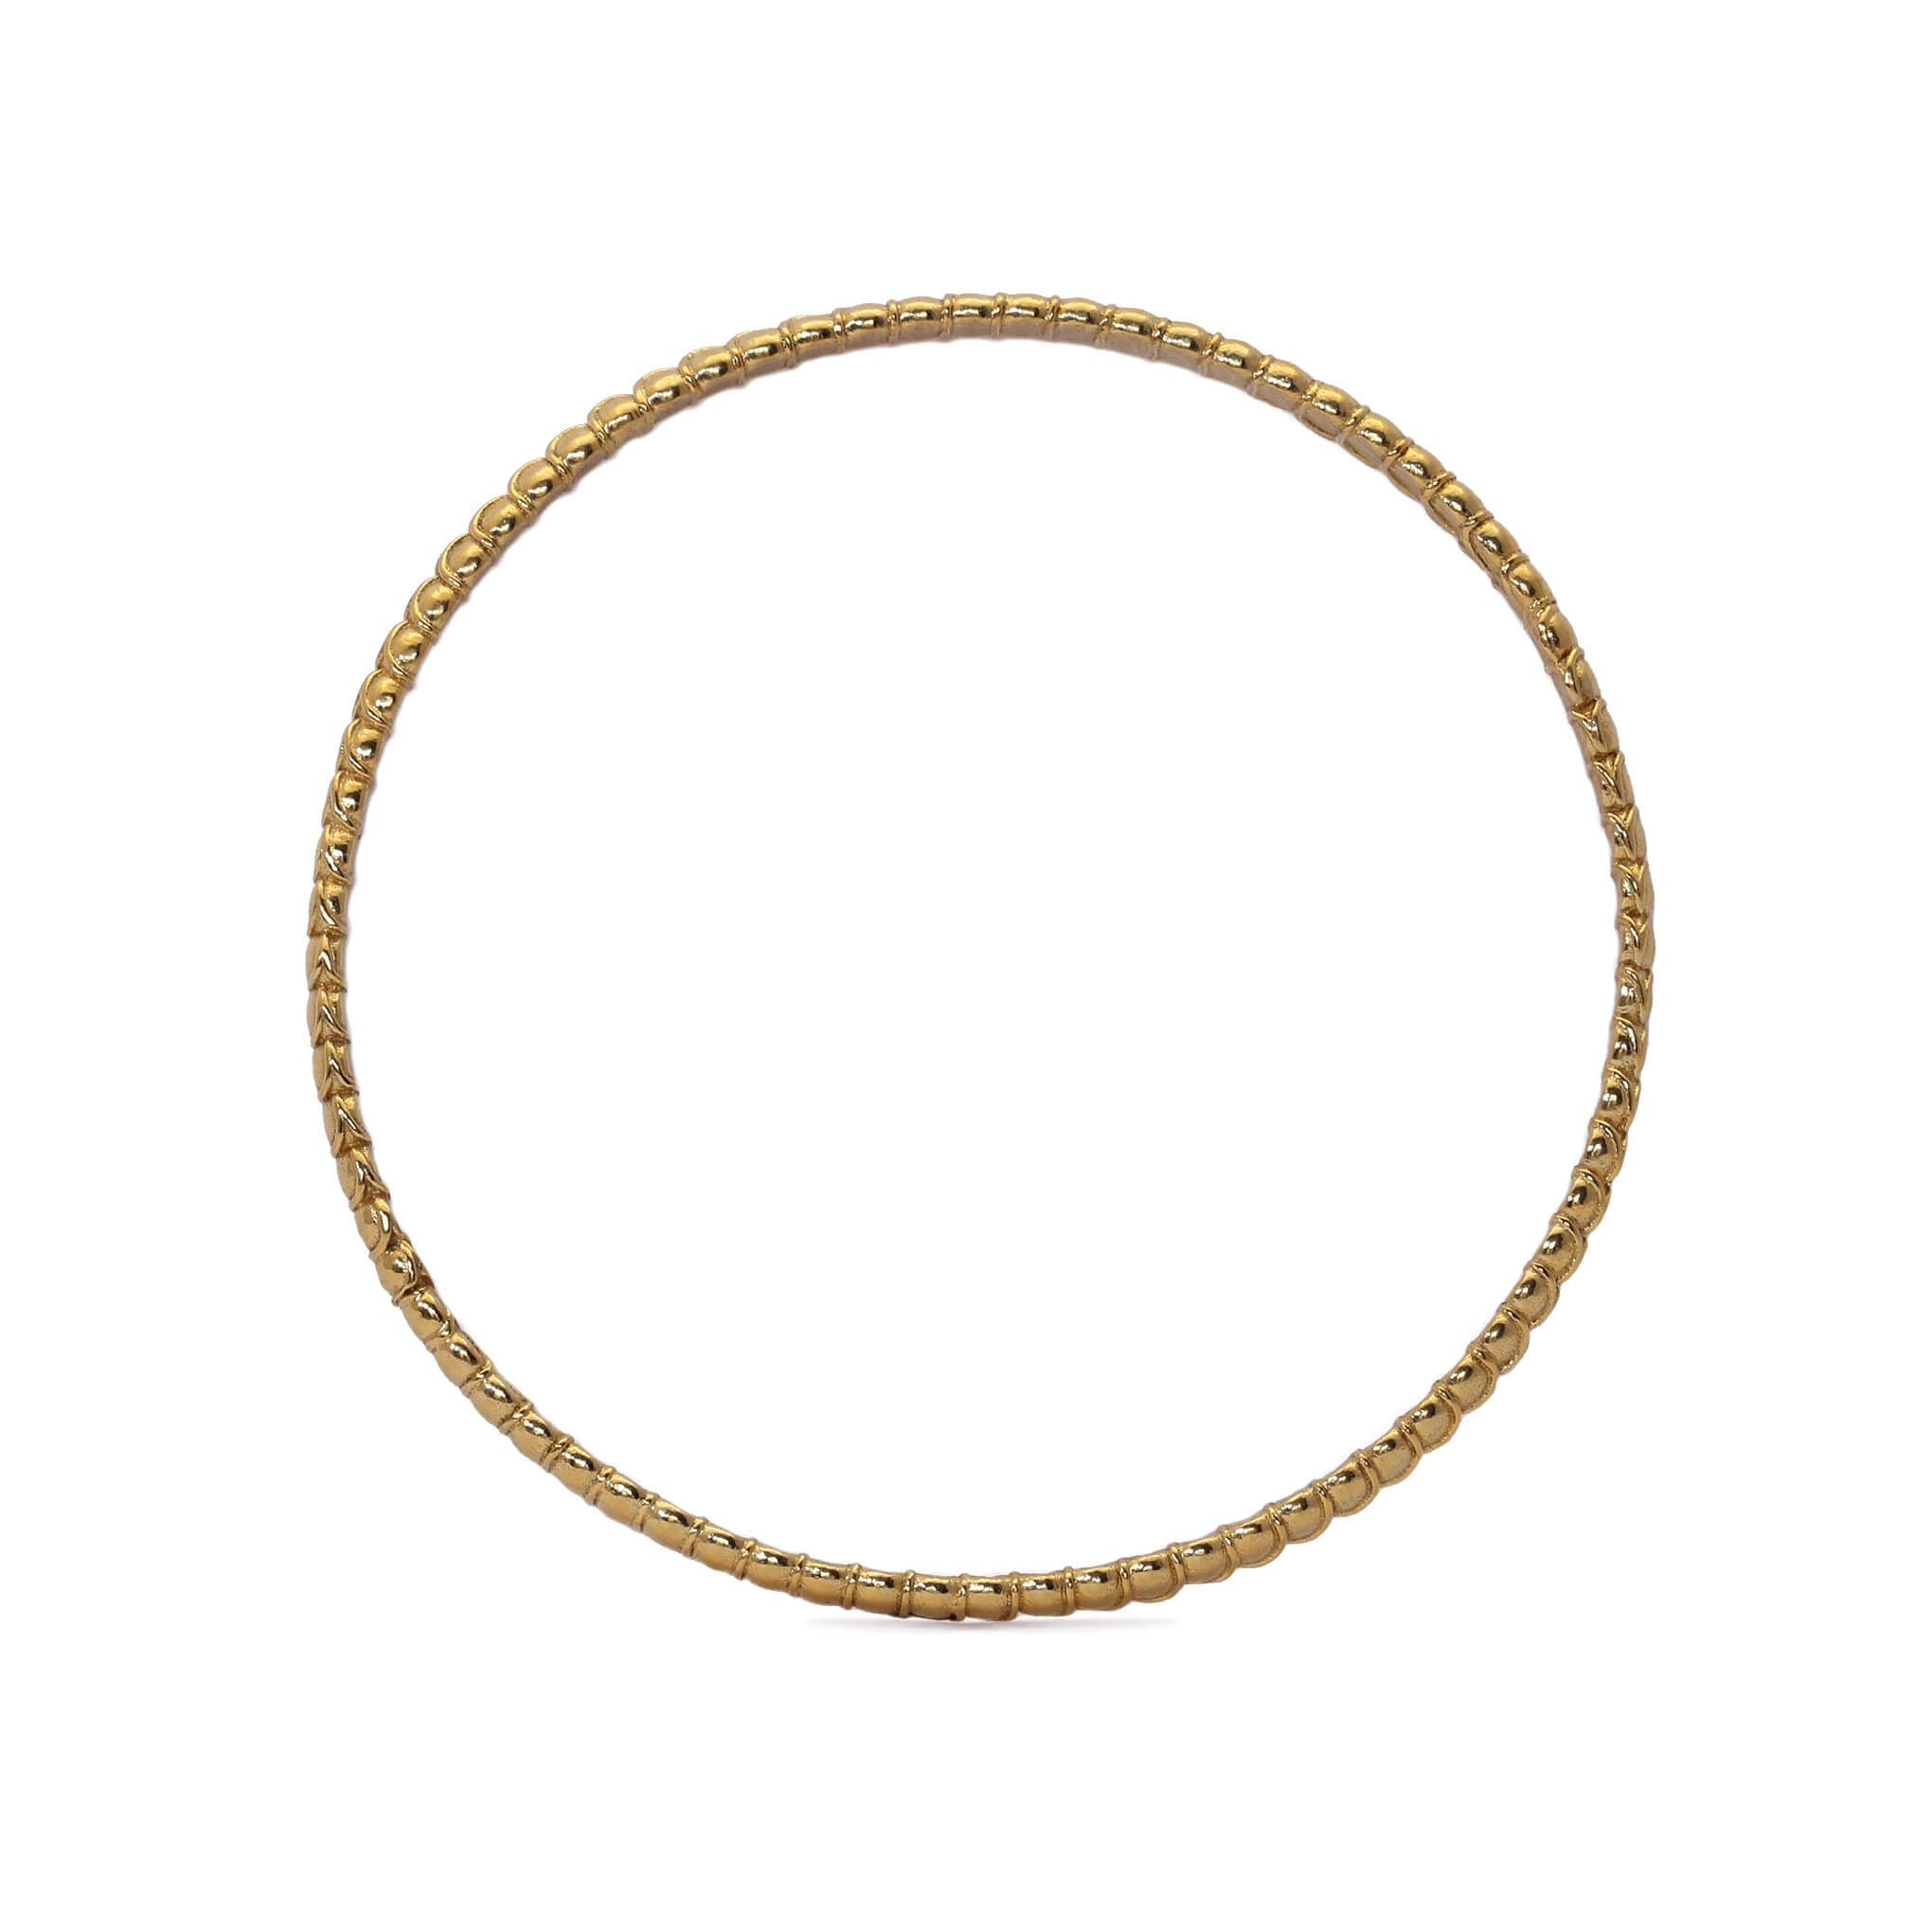 Arthropod Yellow Gold Bangle